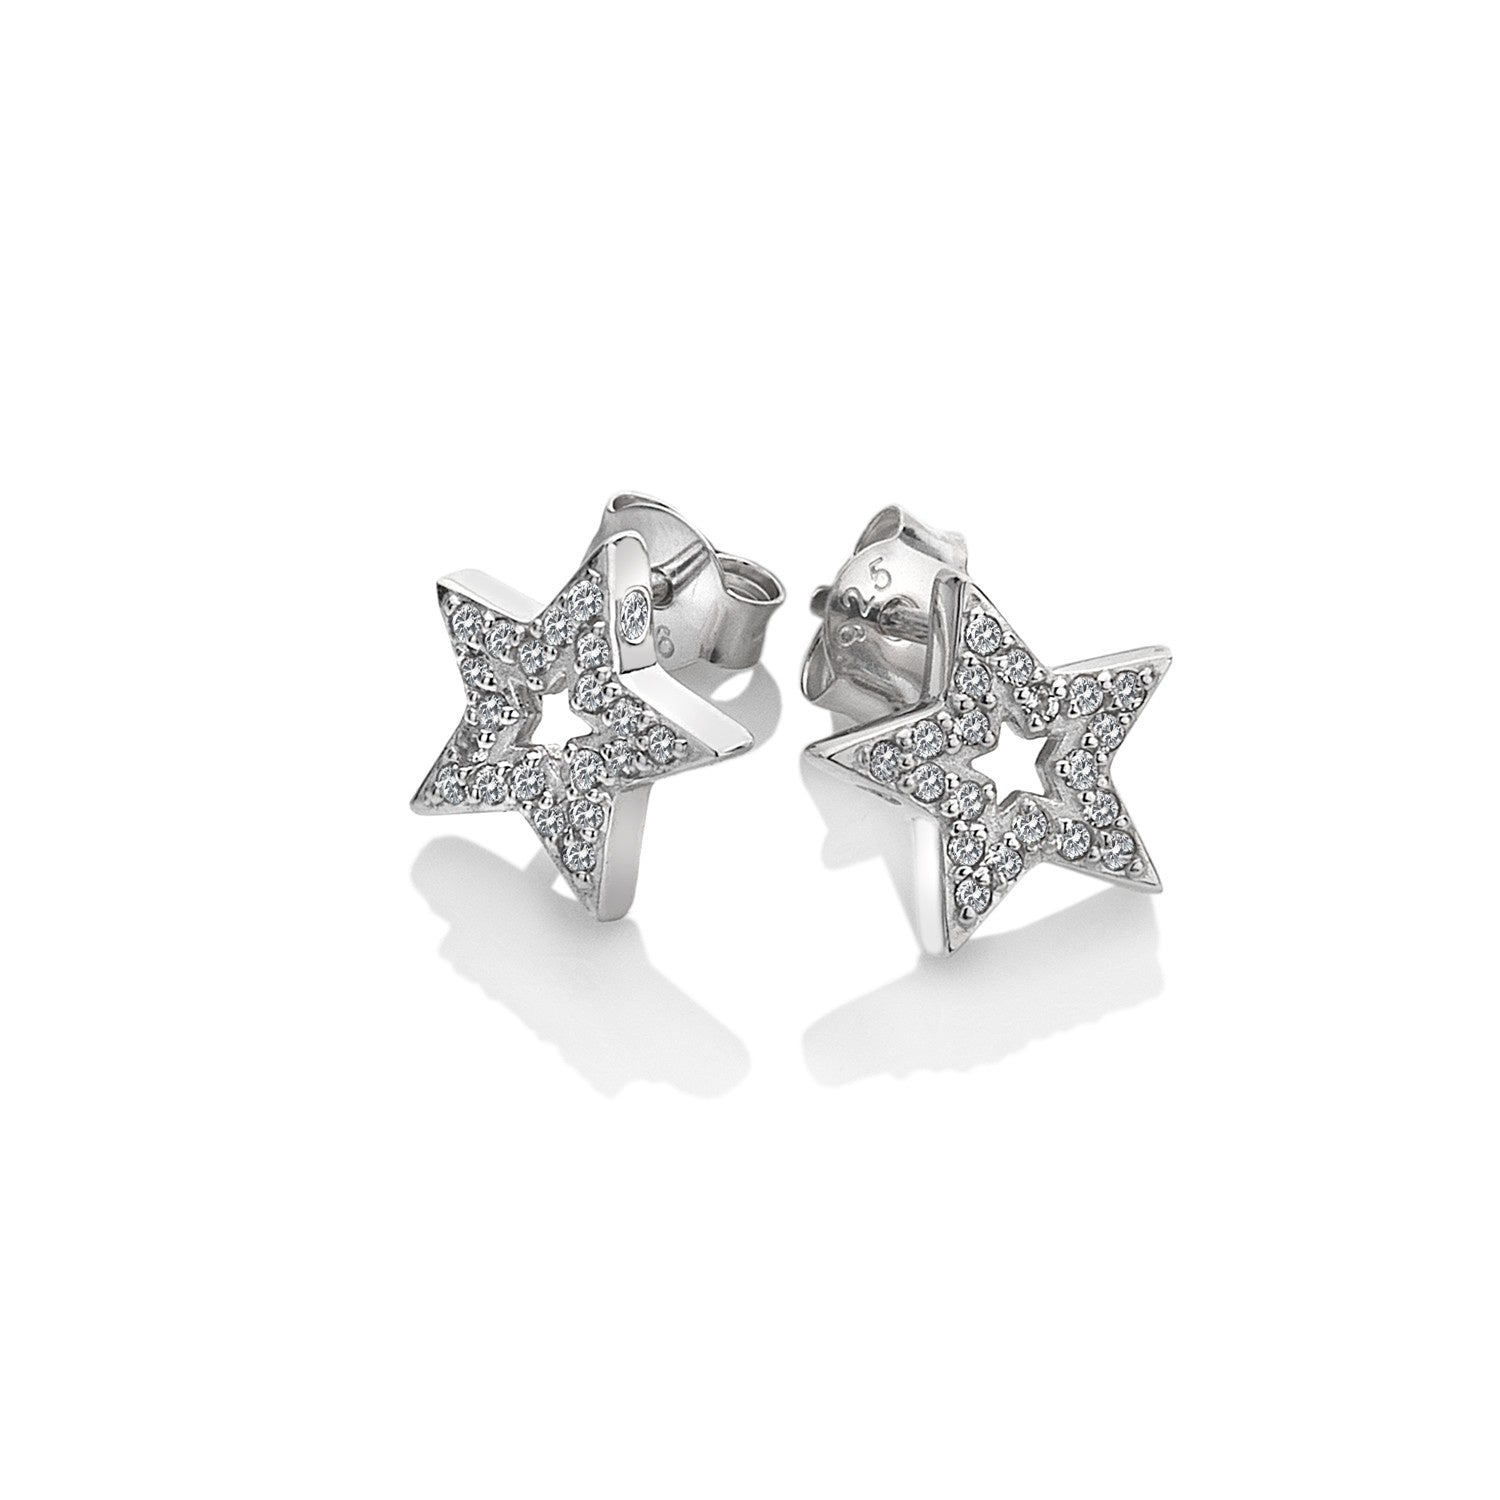 Hot Diamonds Silver Striking Star Earrings DE554